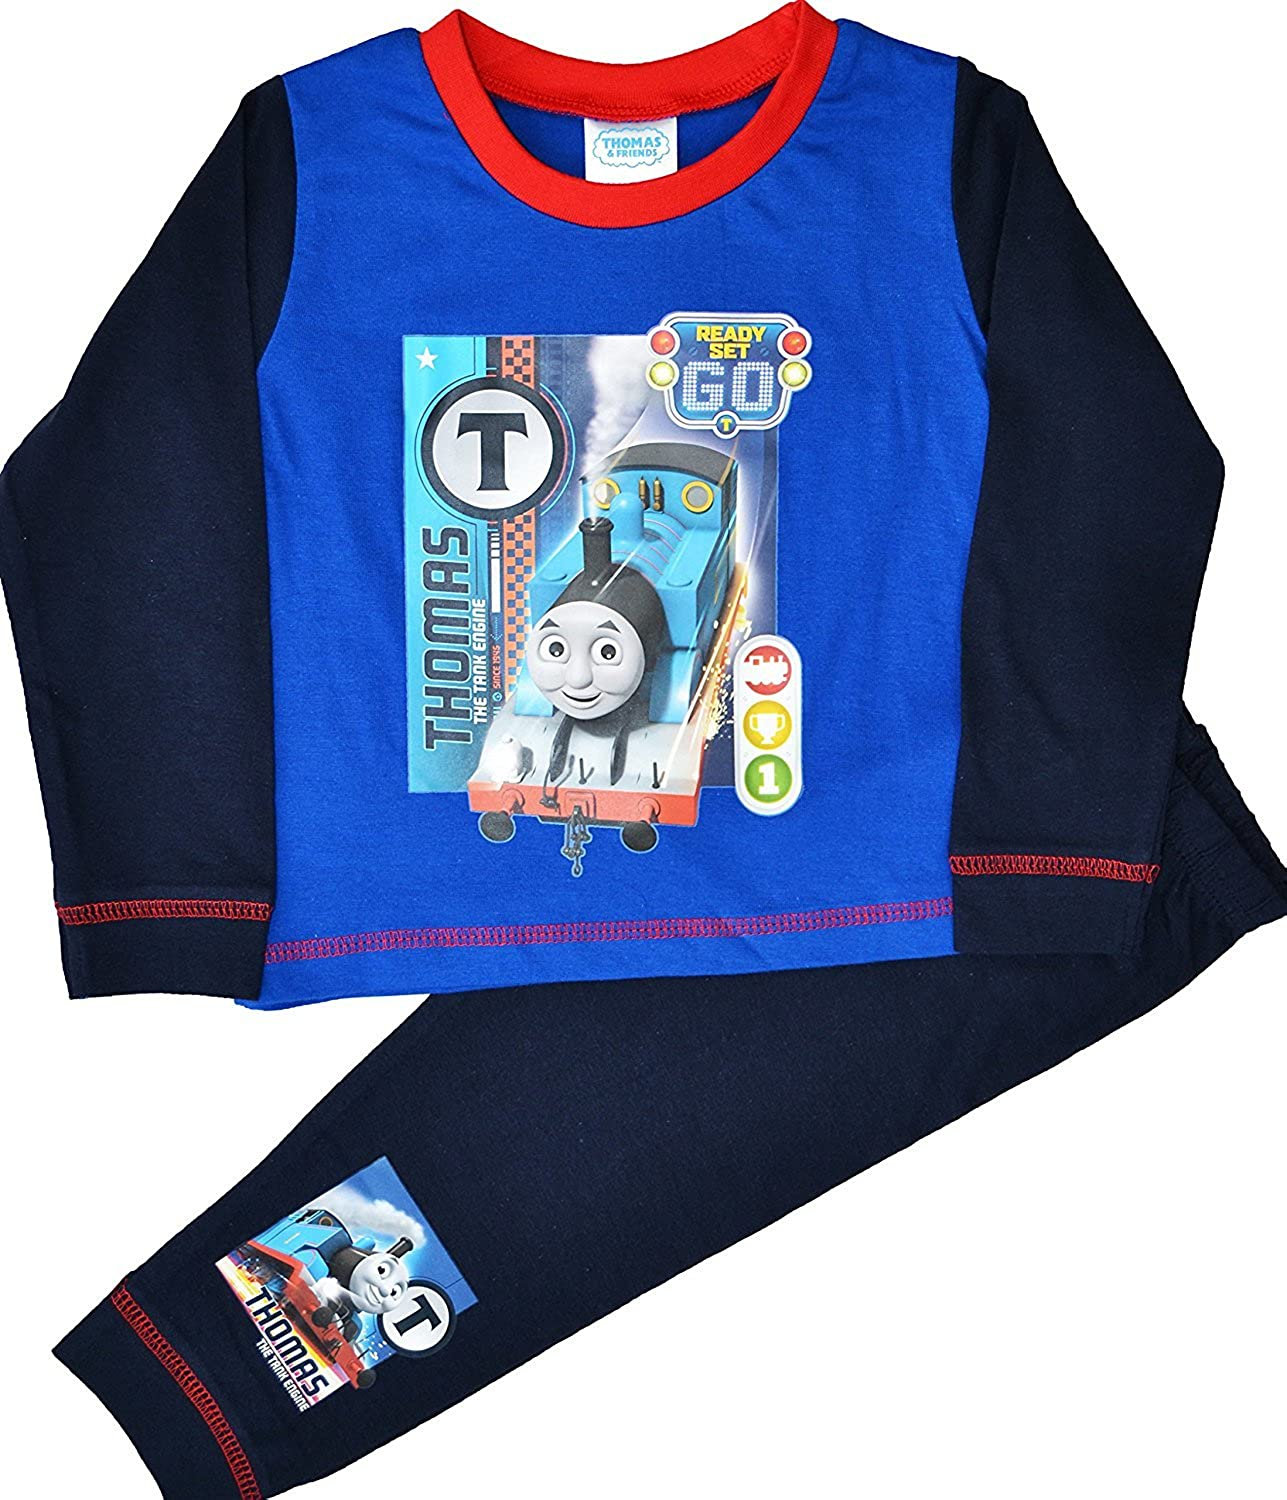 THOMAS THE TANK ENGINE LONG SLEEVE PYJAMAS/PJS 2-3YRS - New